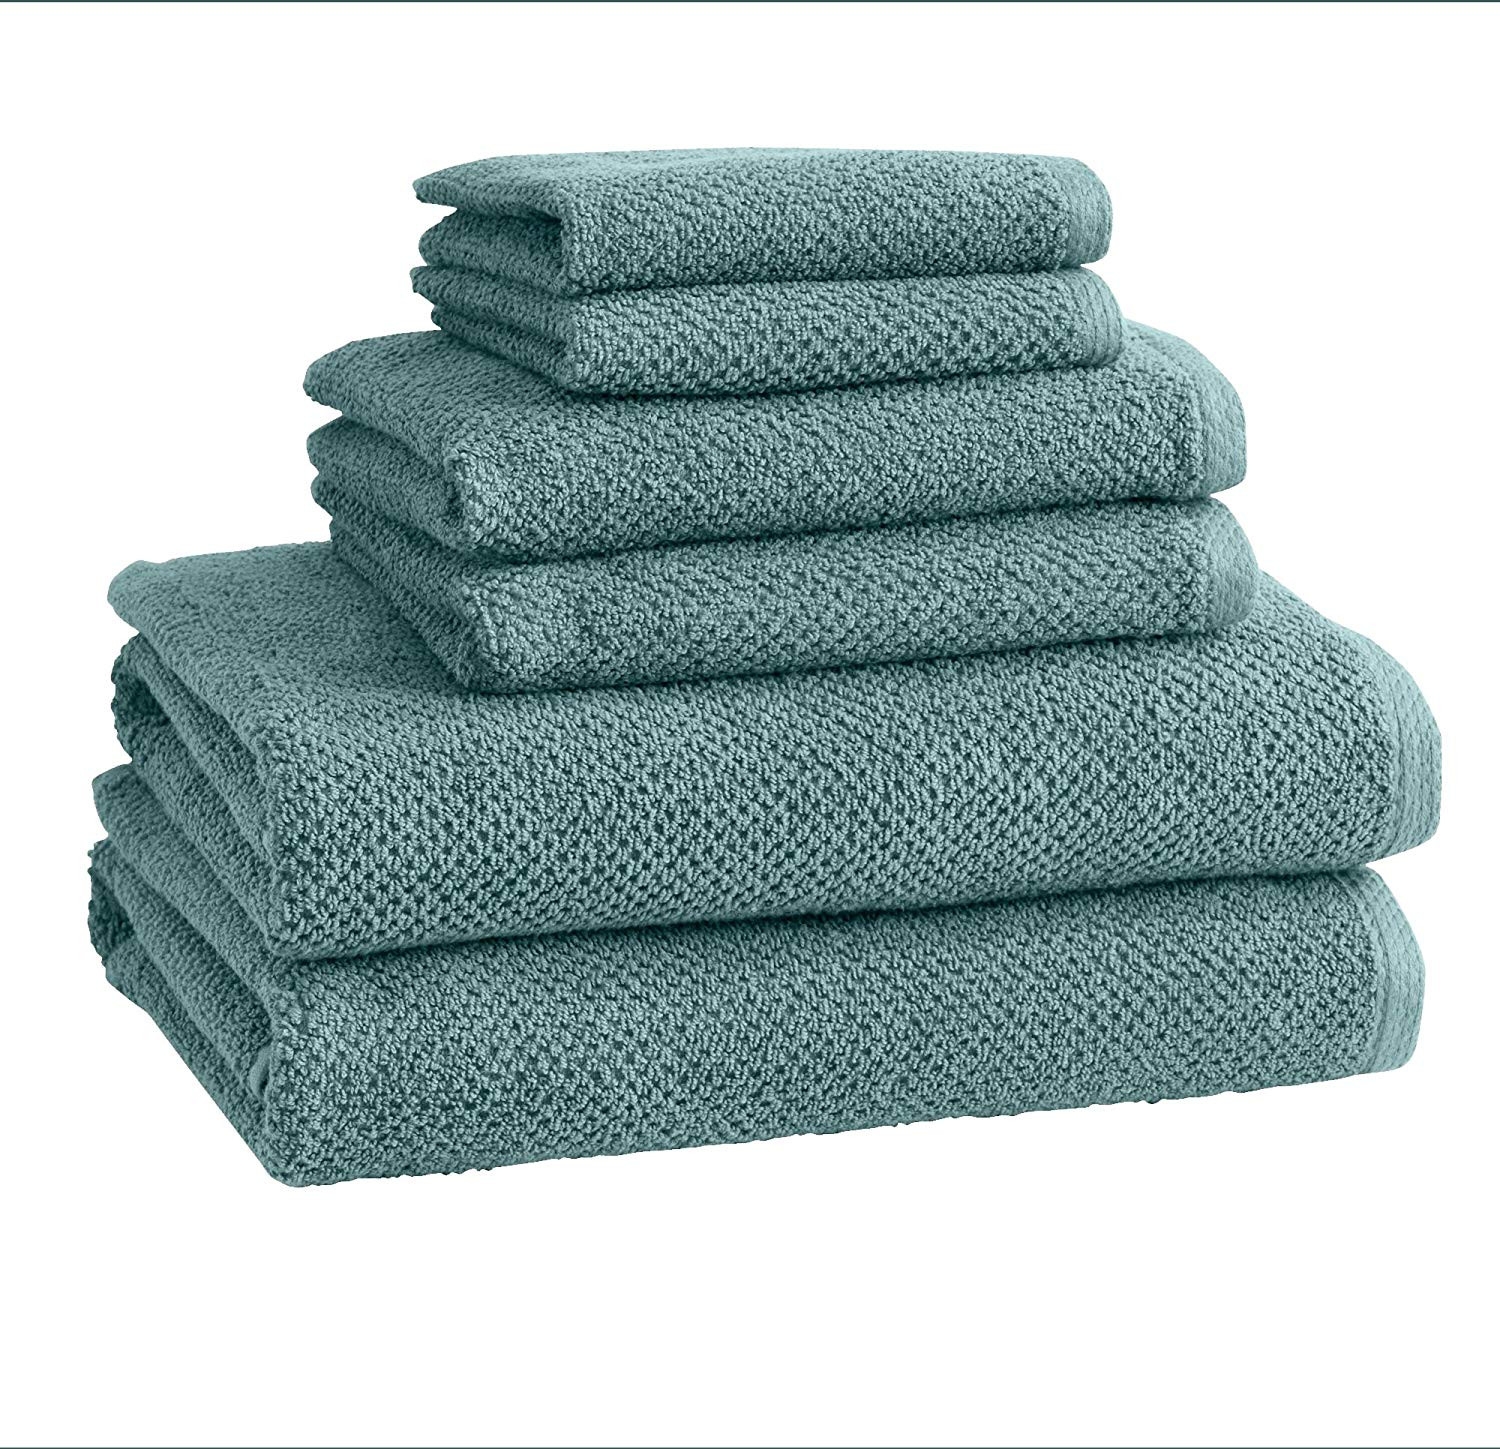 Great Bay Home 6-Piece 100% Cotton, Ultra-Absorbent Popcorn Towel Set. 6 Elegant Solid Colors. Popcorn Weave. Acacia Collection. (6pc set, Mineral Blue)